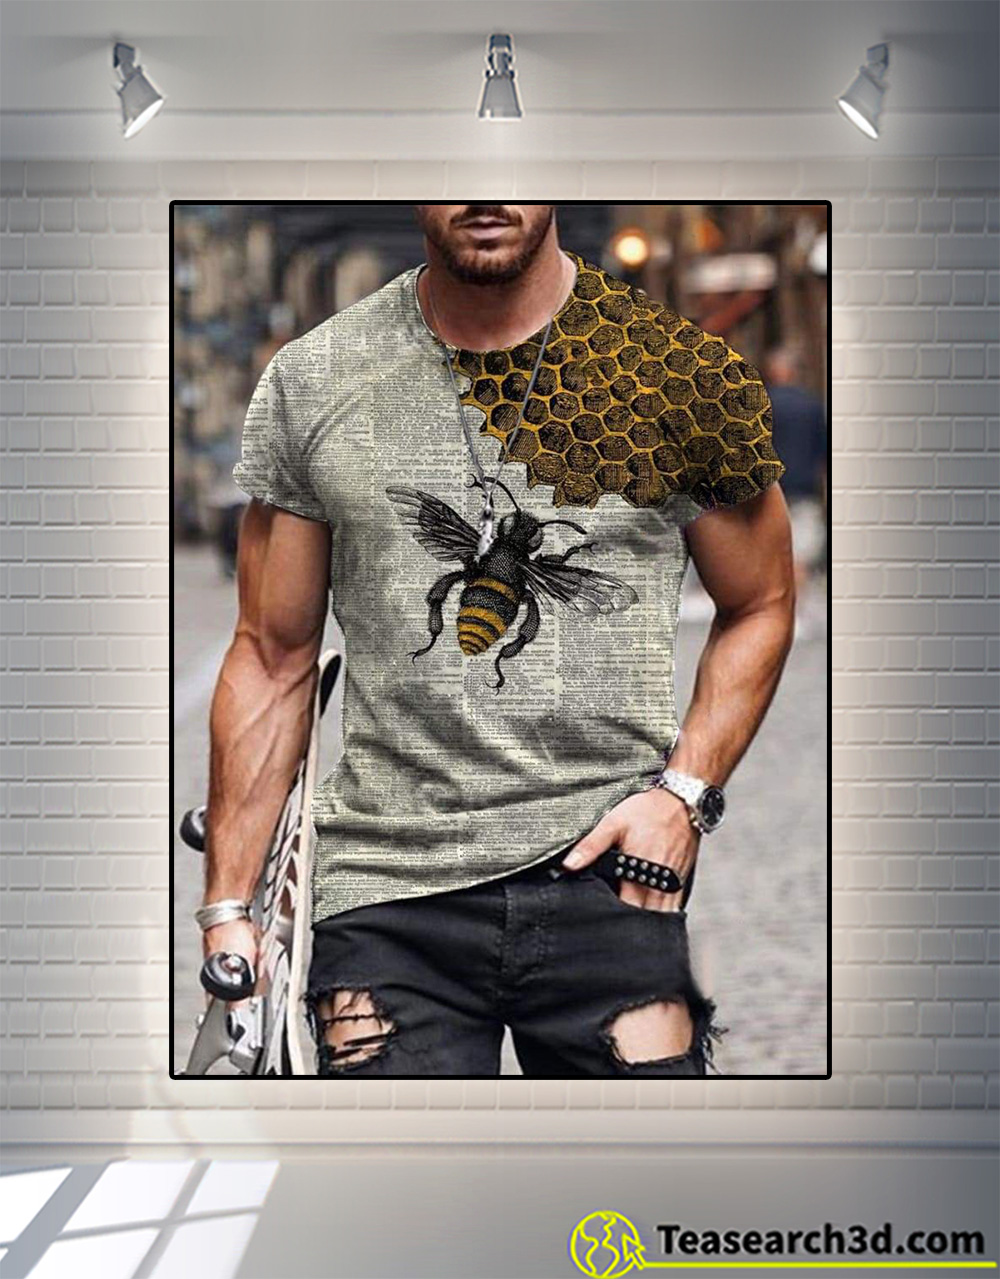 Bee dictionary page 3d all over printed shirt